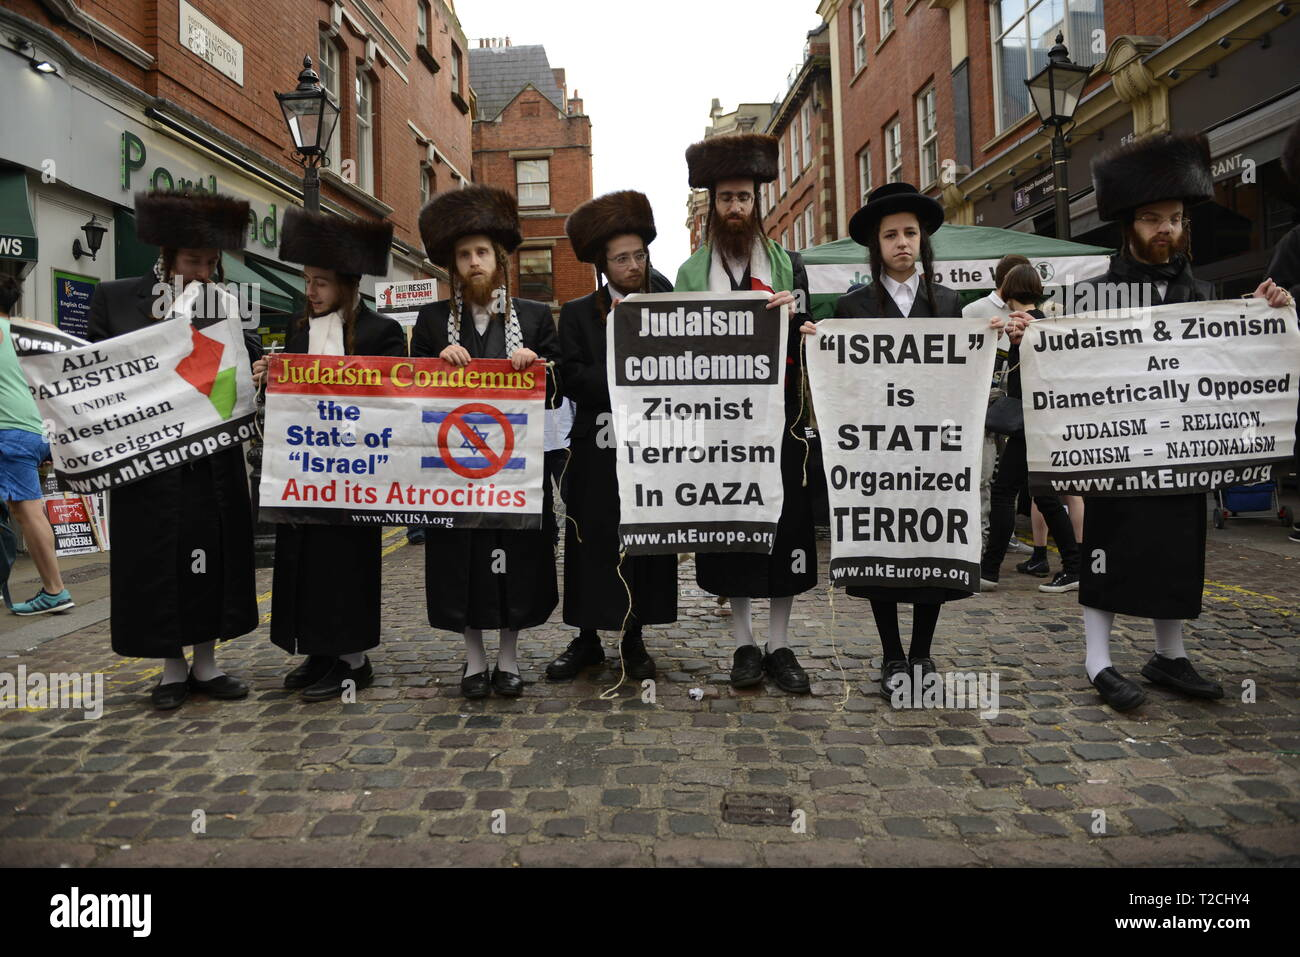 London, Greater London, UK. 30th Mar, 2019. Orthodox Jews are seen holding placards during the Exist, Resist, Return Rally for Palestine in London.People gather outside the Israeli embassy in London to demonstrate against the Israeli government, and to demand respect for Palestinians' fundamental rights to exist, resist and return. Palestinians are calling for global protests to support their right to come back to their villages. Rally was organized by Palestine Solidarity Campaign, Stop the War Coalition, Palestinian Forum in Britain, Friends of Al- Aqsa, and Muslim Associati - Stock Image